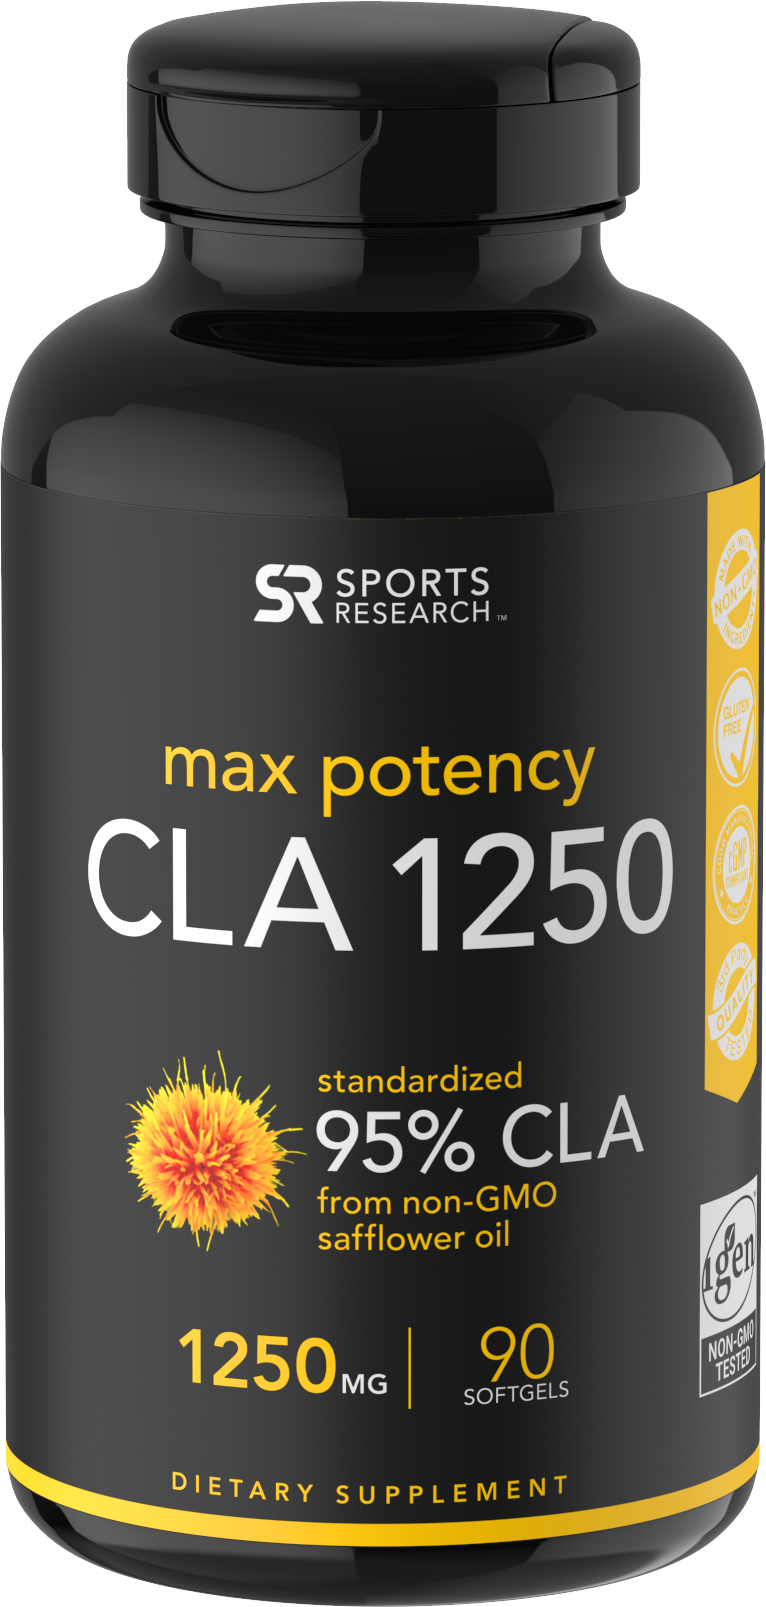 Sports-Research-CLA-1250-Max-Potency-1250-mg-90-Softgels-1